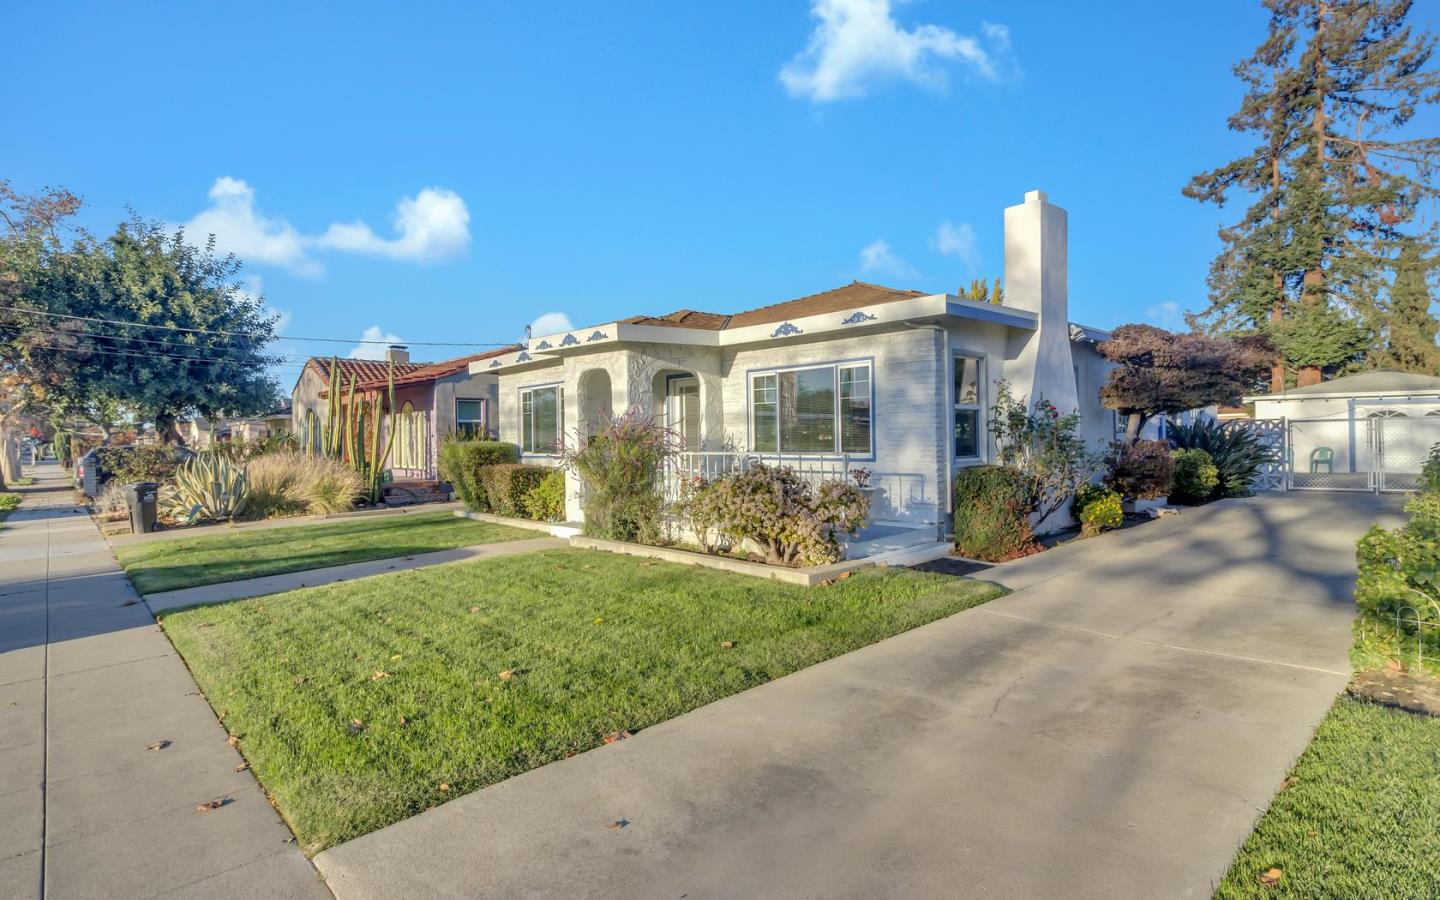 Additional photo for property listing at 854 N 4th Street  San Jose, カリフォルニア 95112 アメリカ合衆国